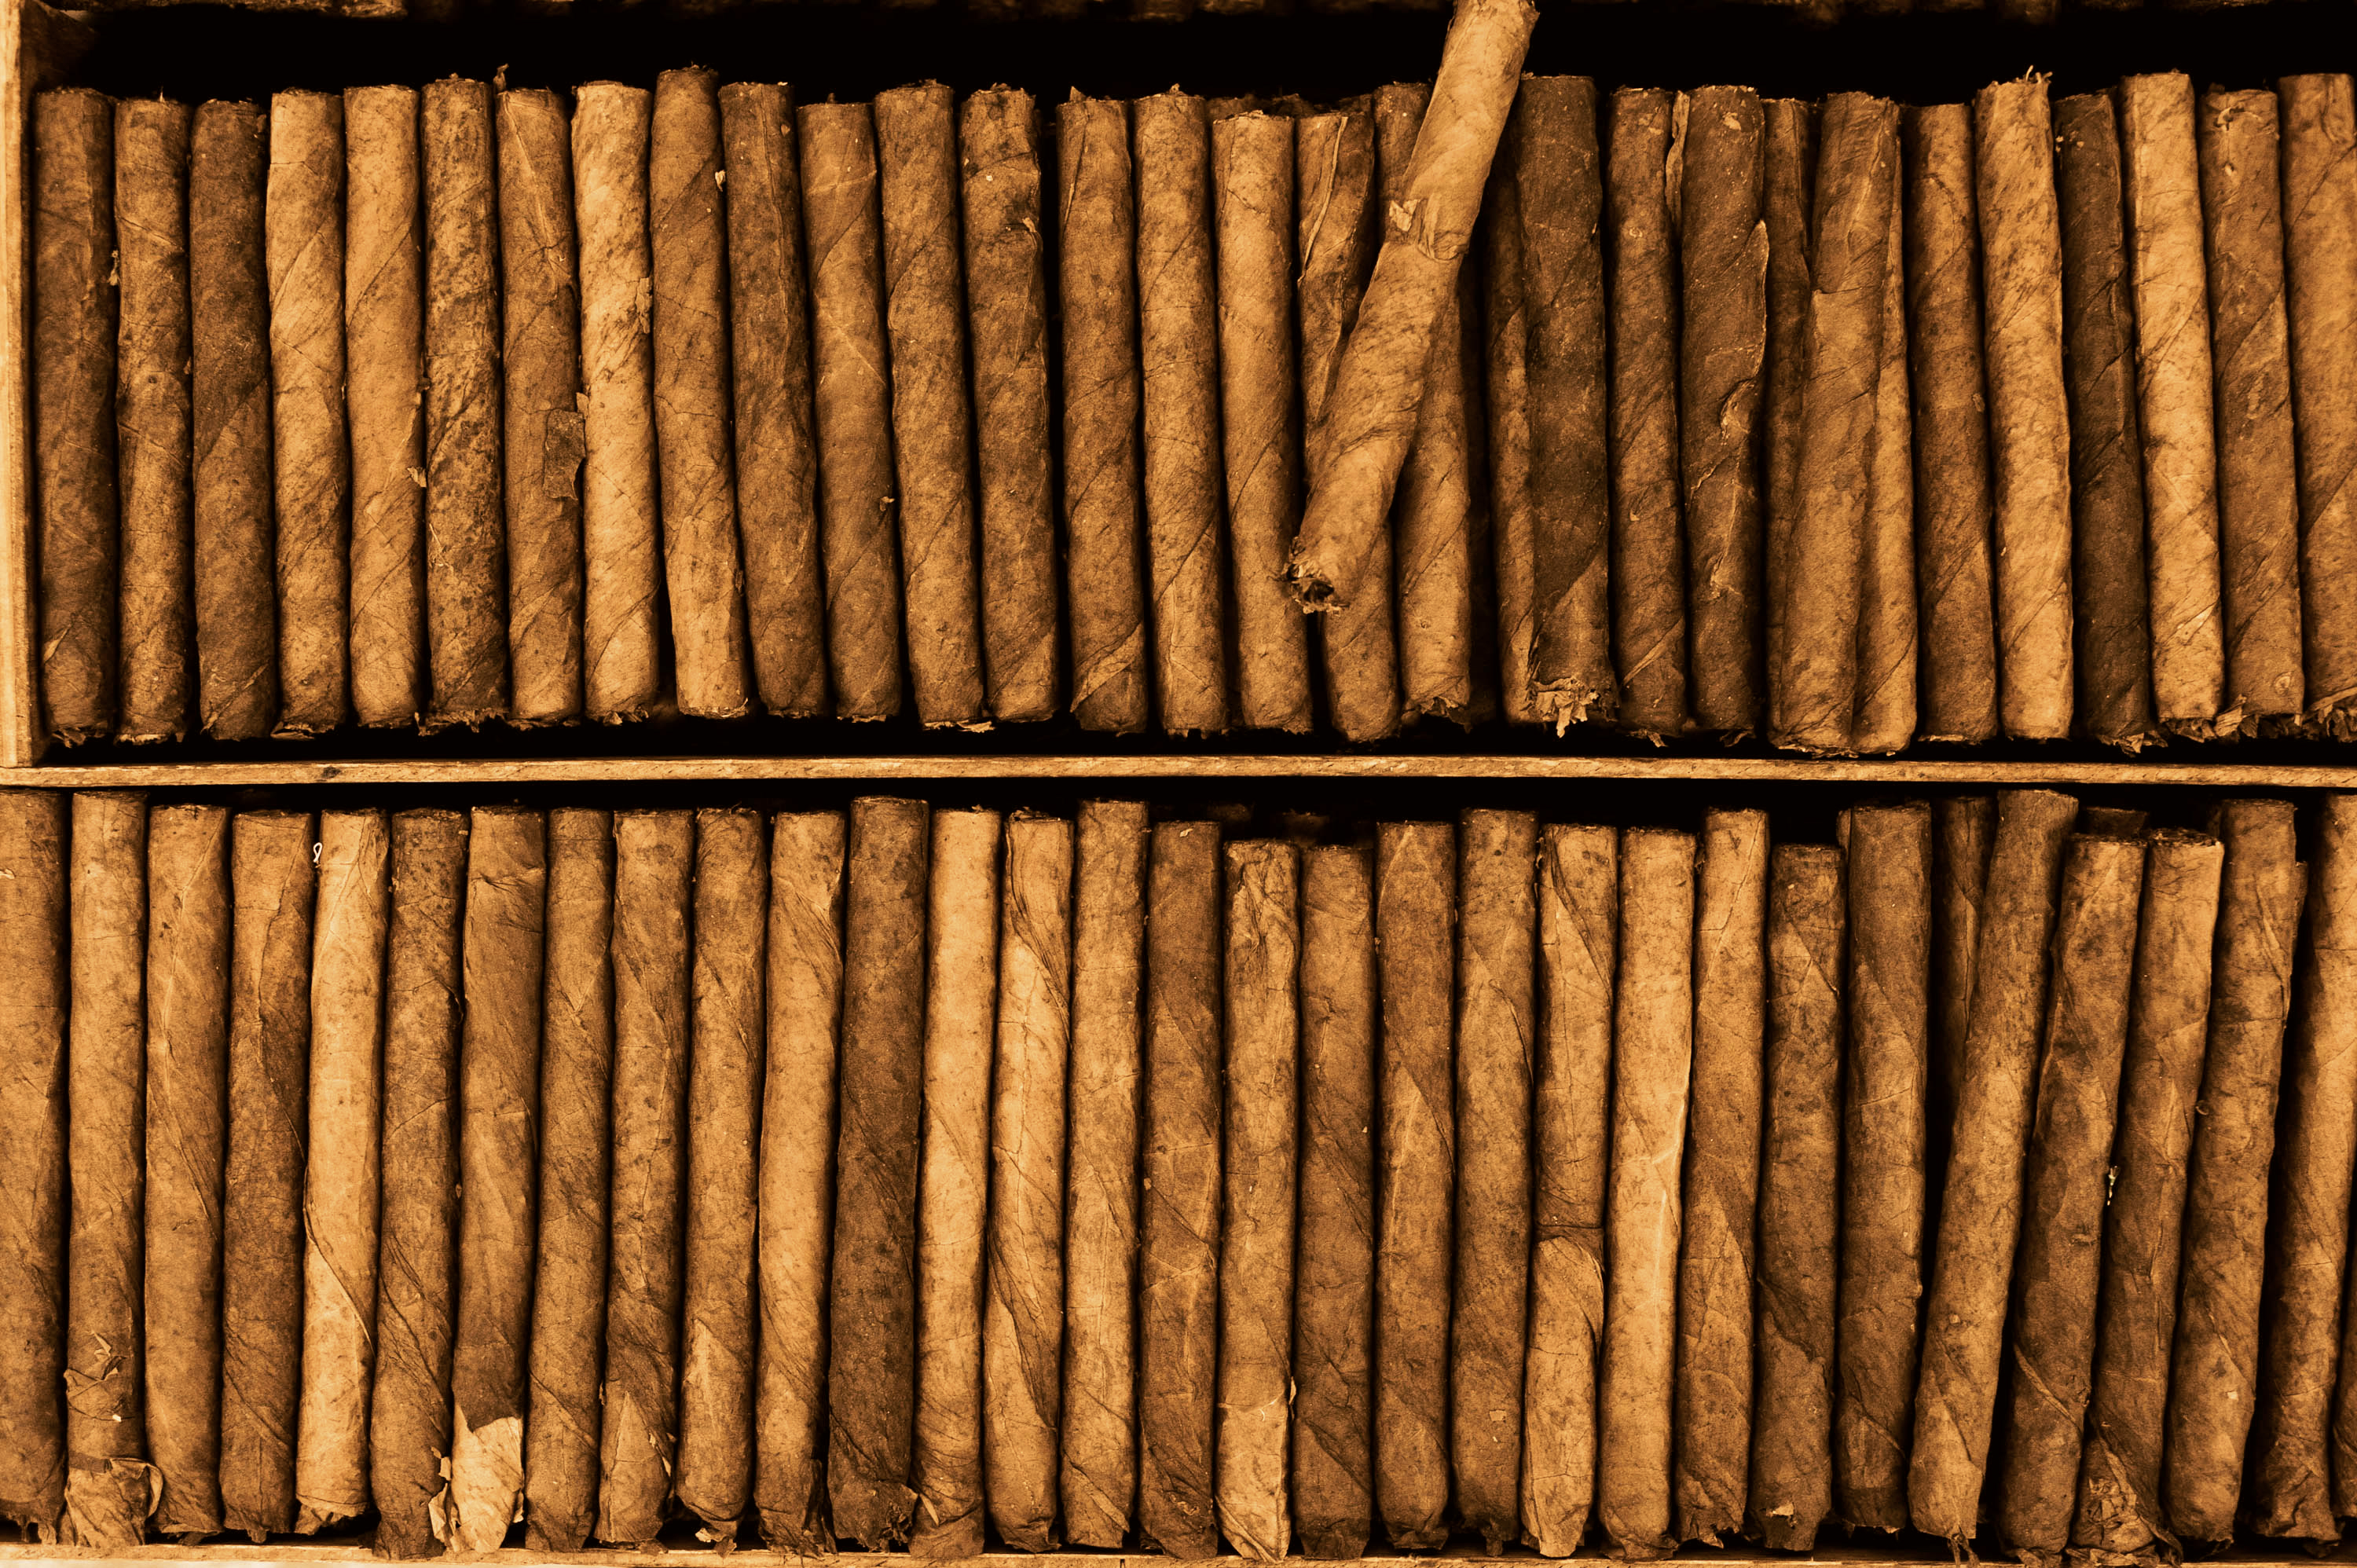 SHOP: CIGARS